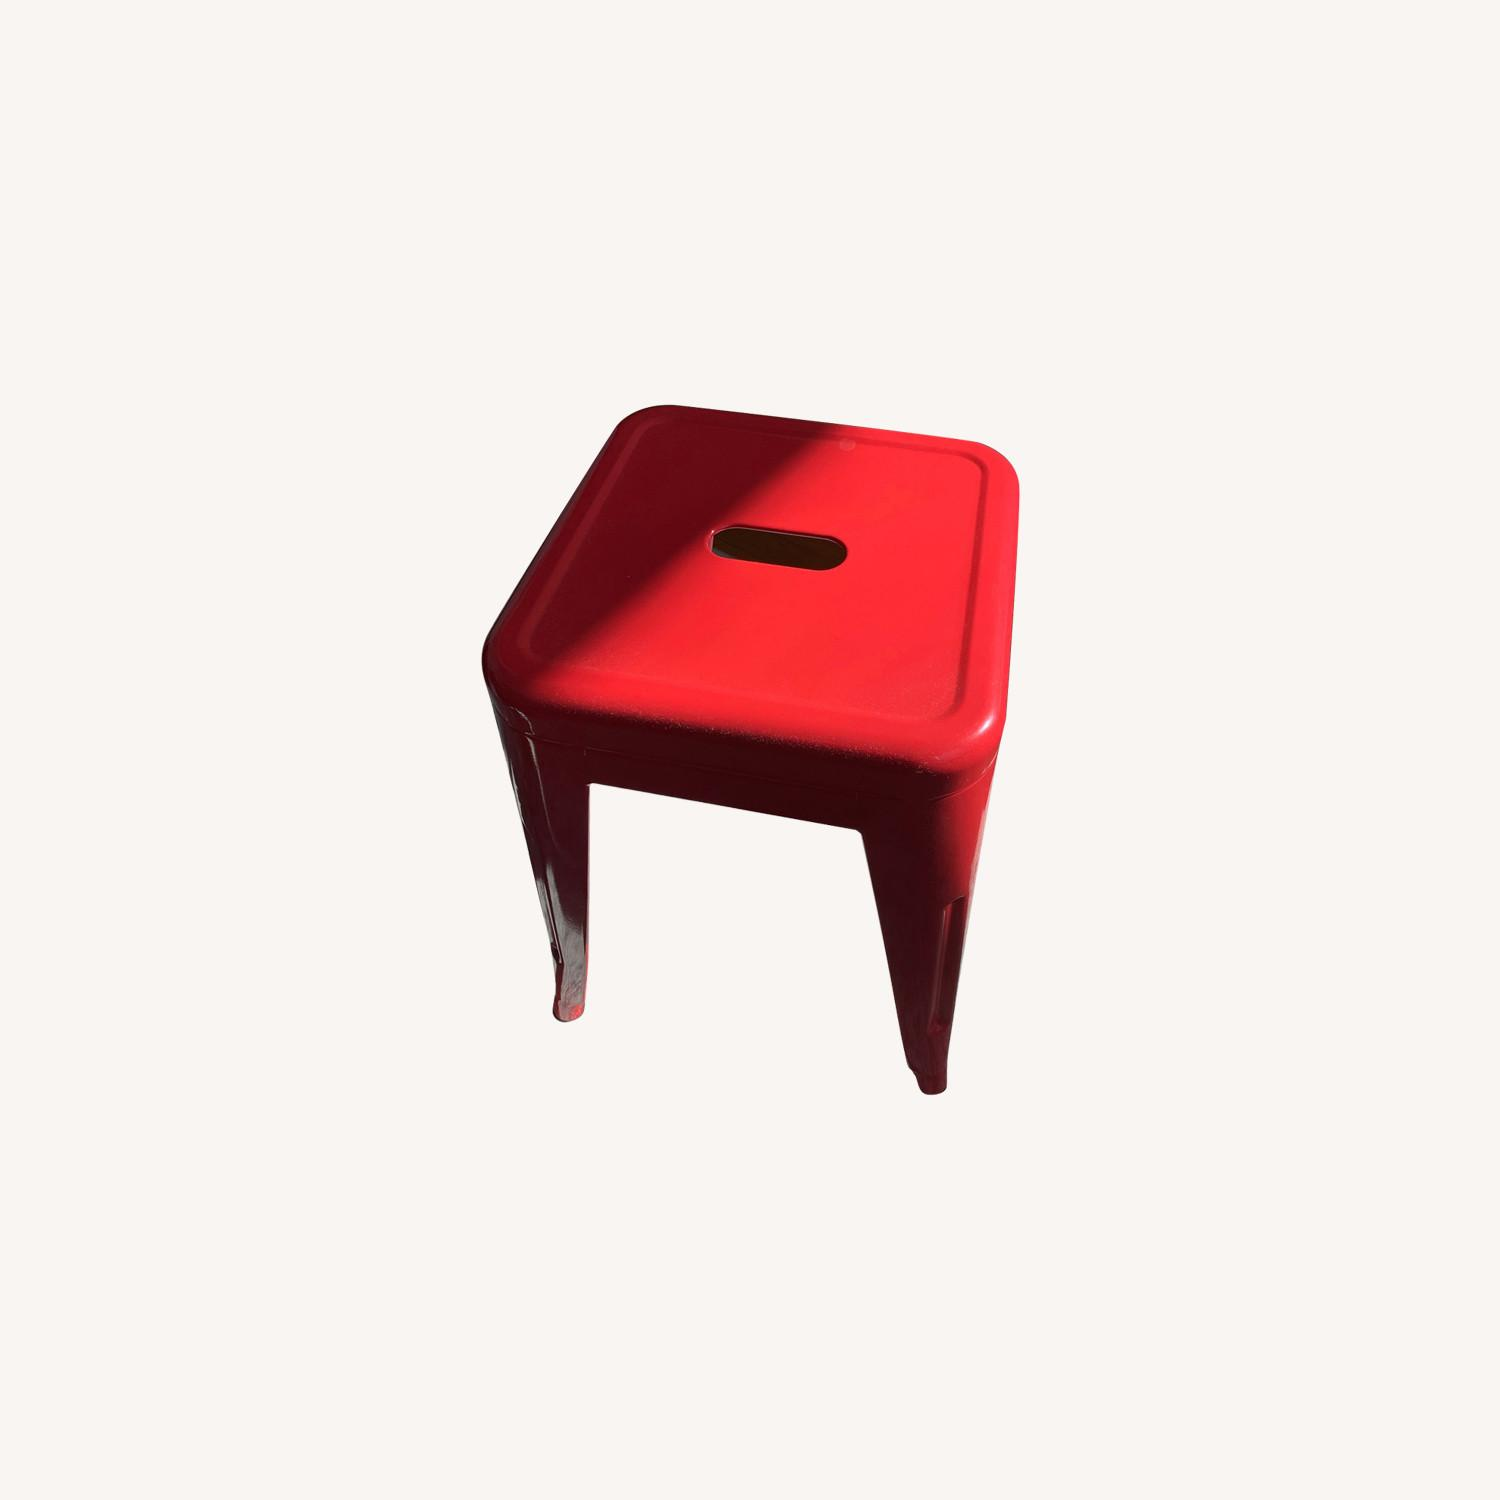 Industrial Red Stool - image-0